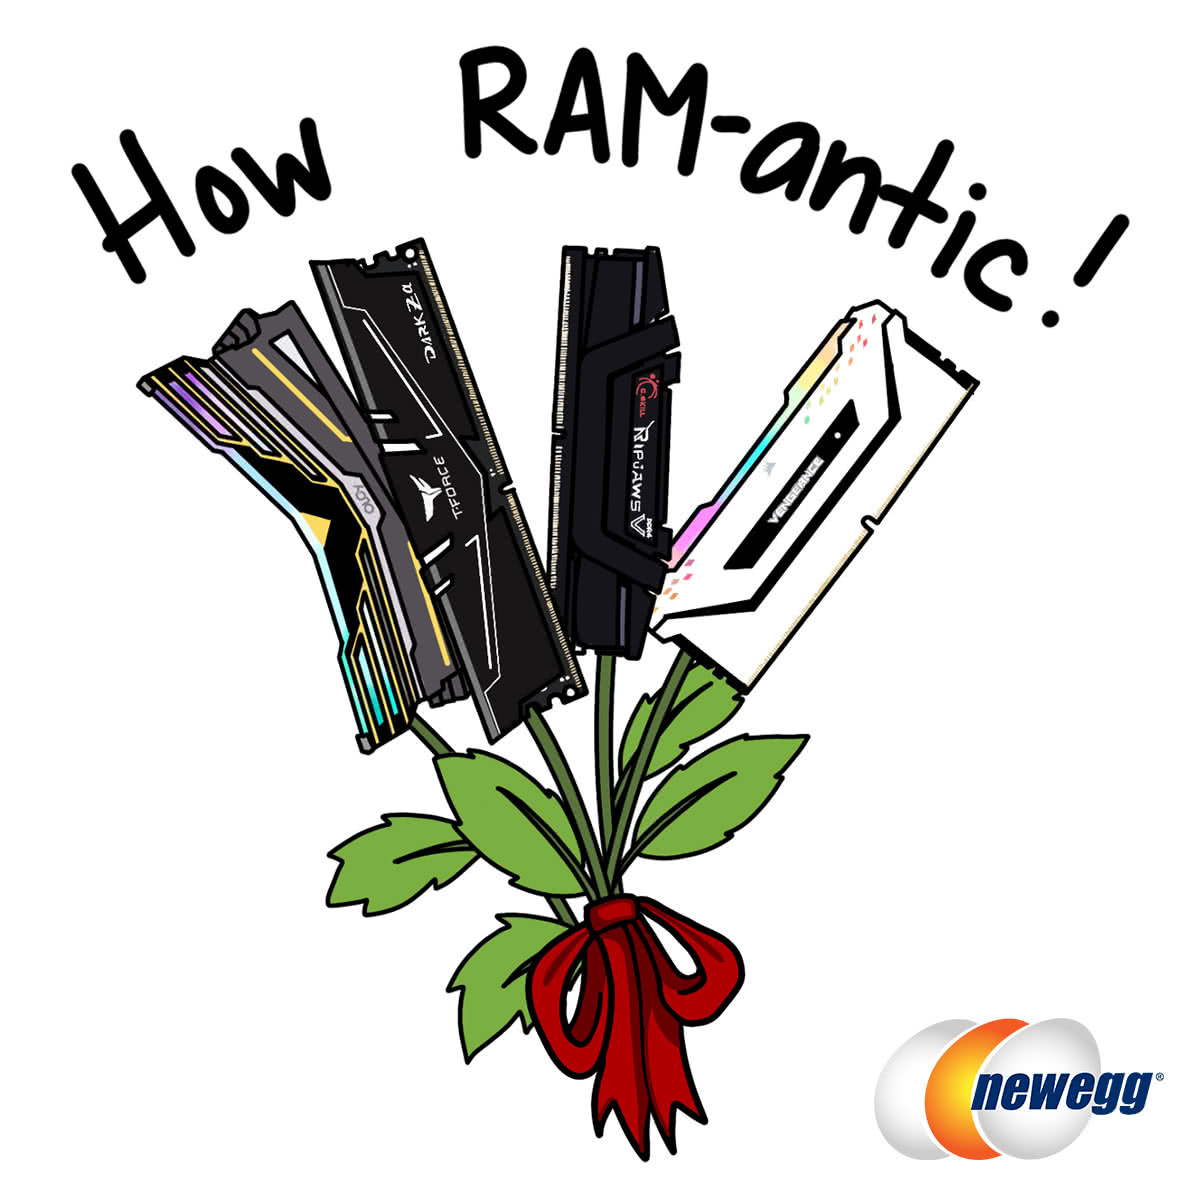 How RAM-antic!